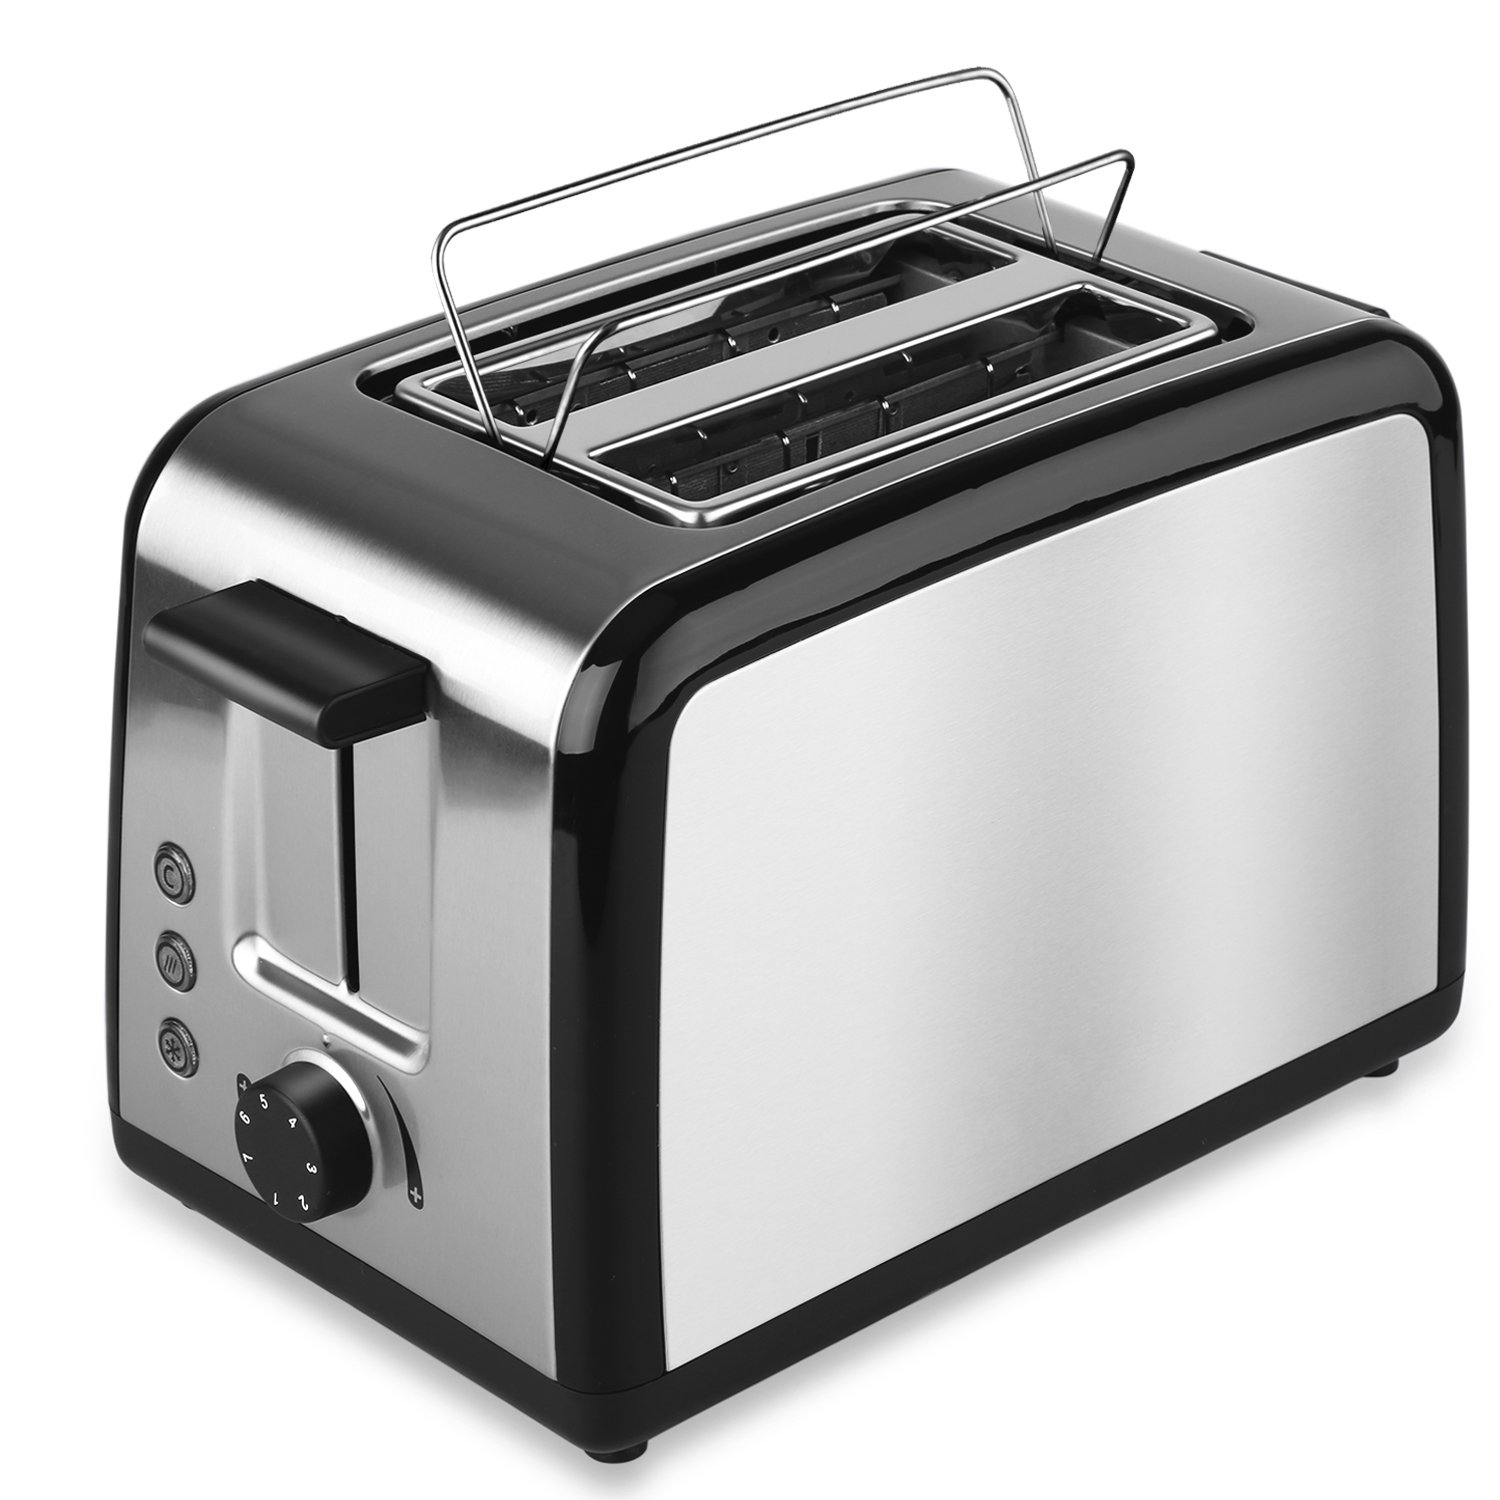 Toaster 2 Slice Stainless steel by TO BOX